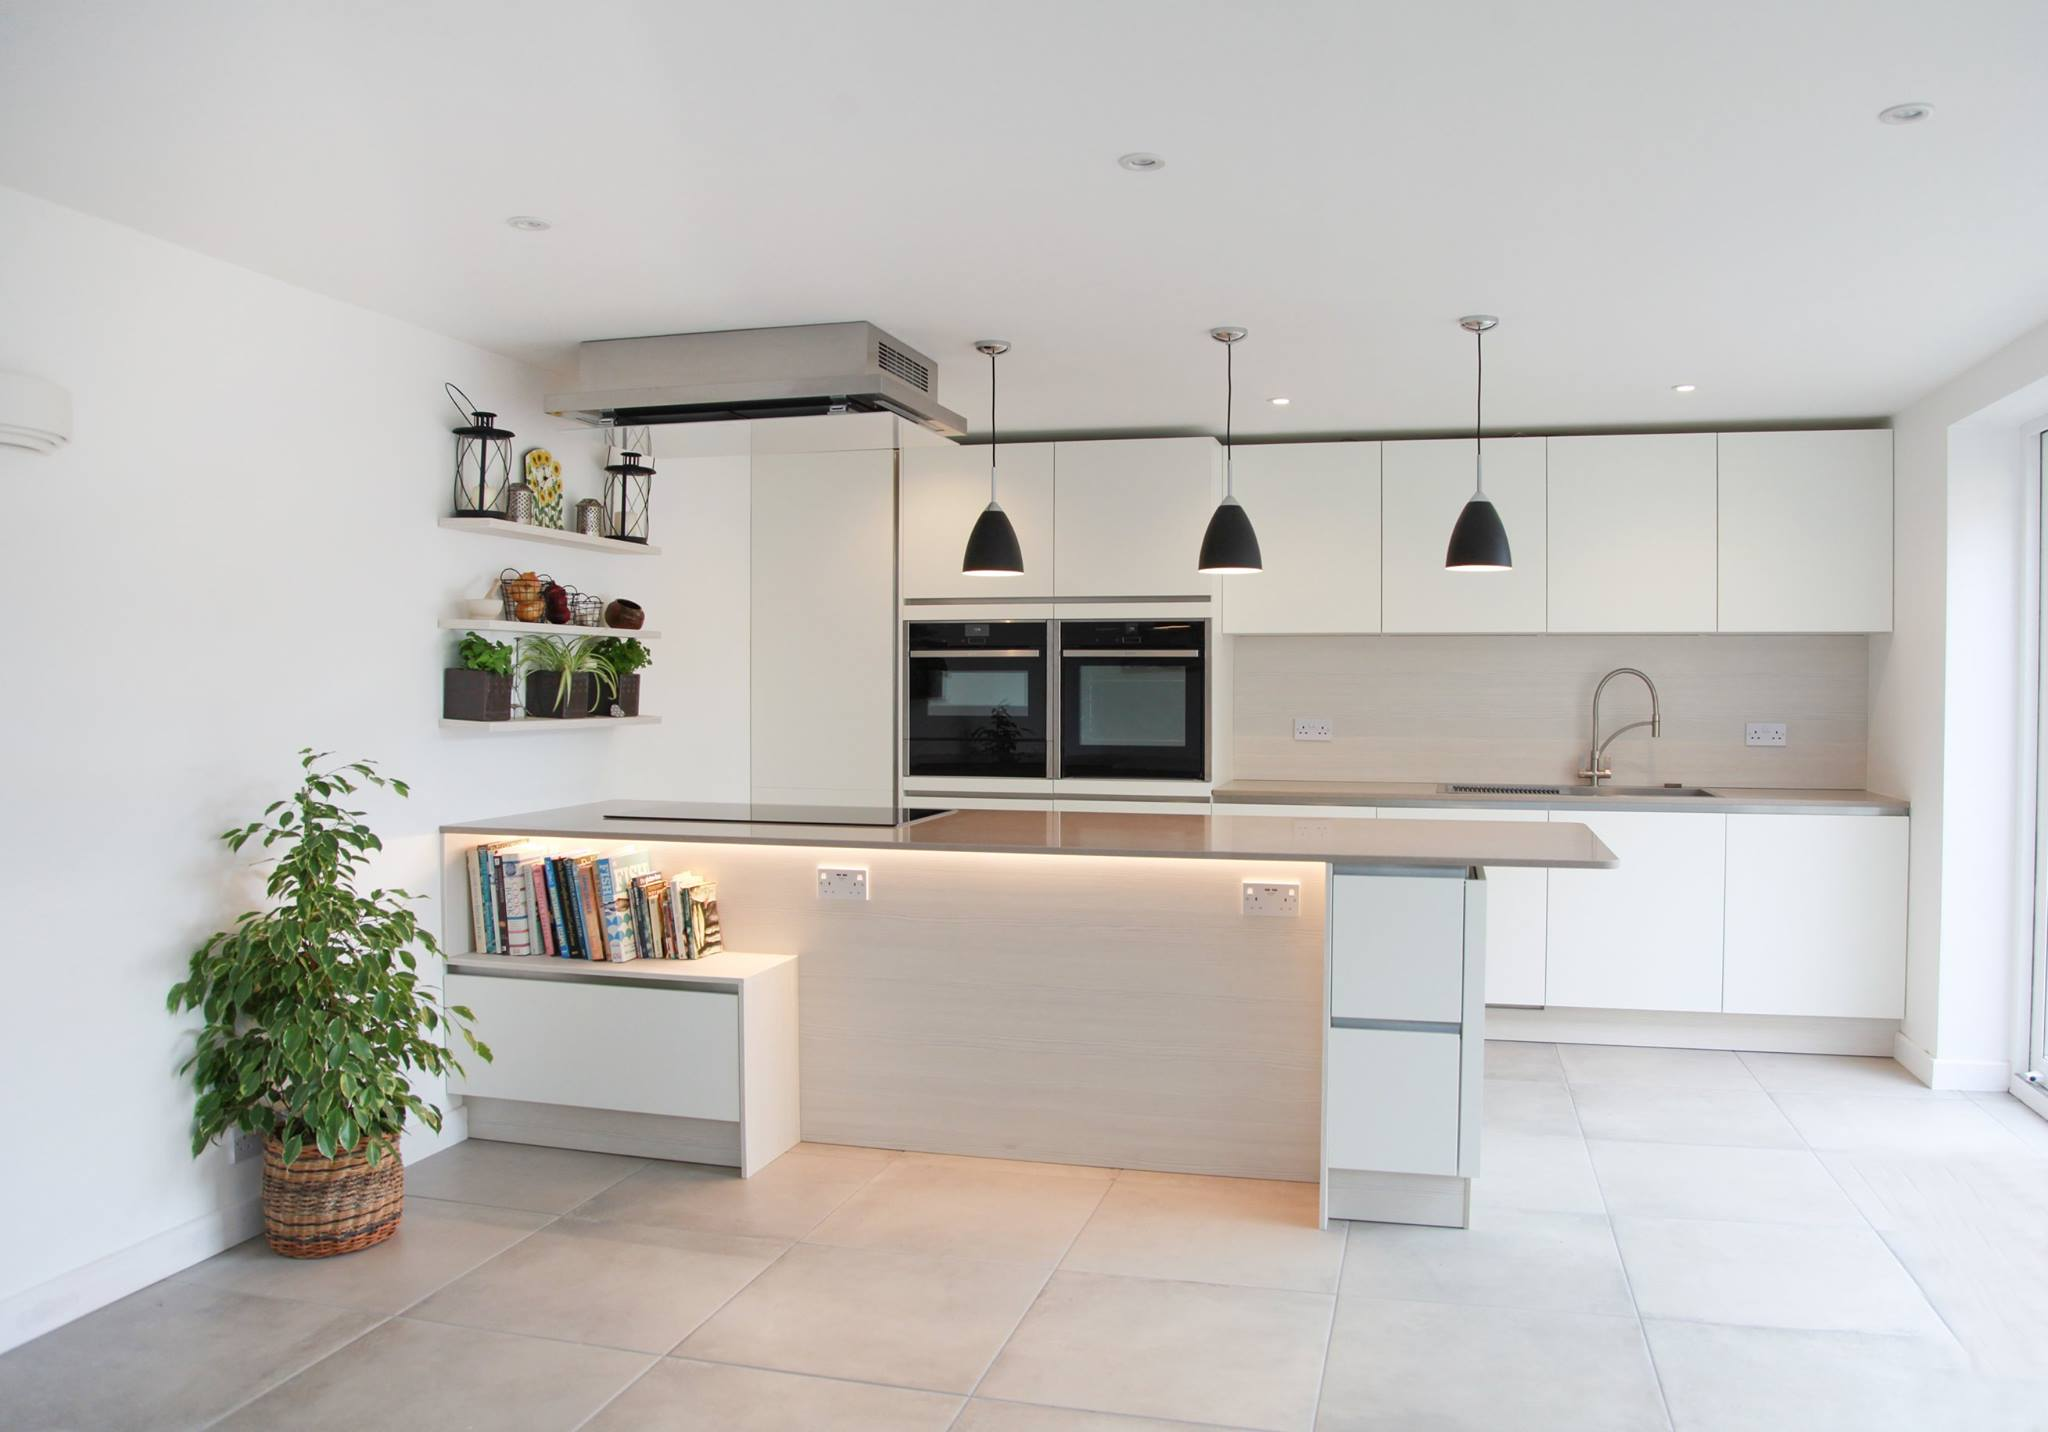 Ashton Keynes Kitchen Project - Kitchens Cirencester, Voga Kitchens